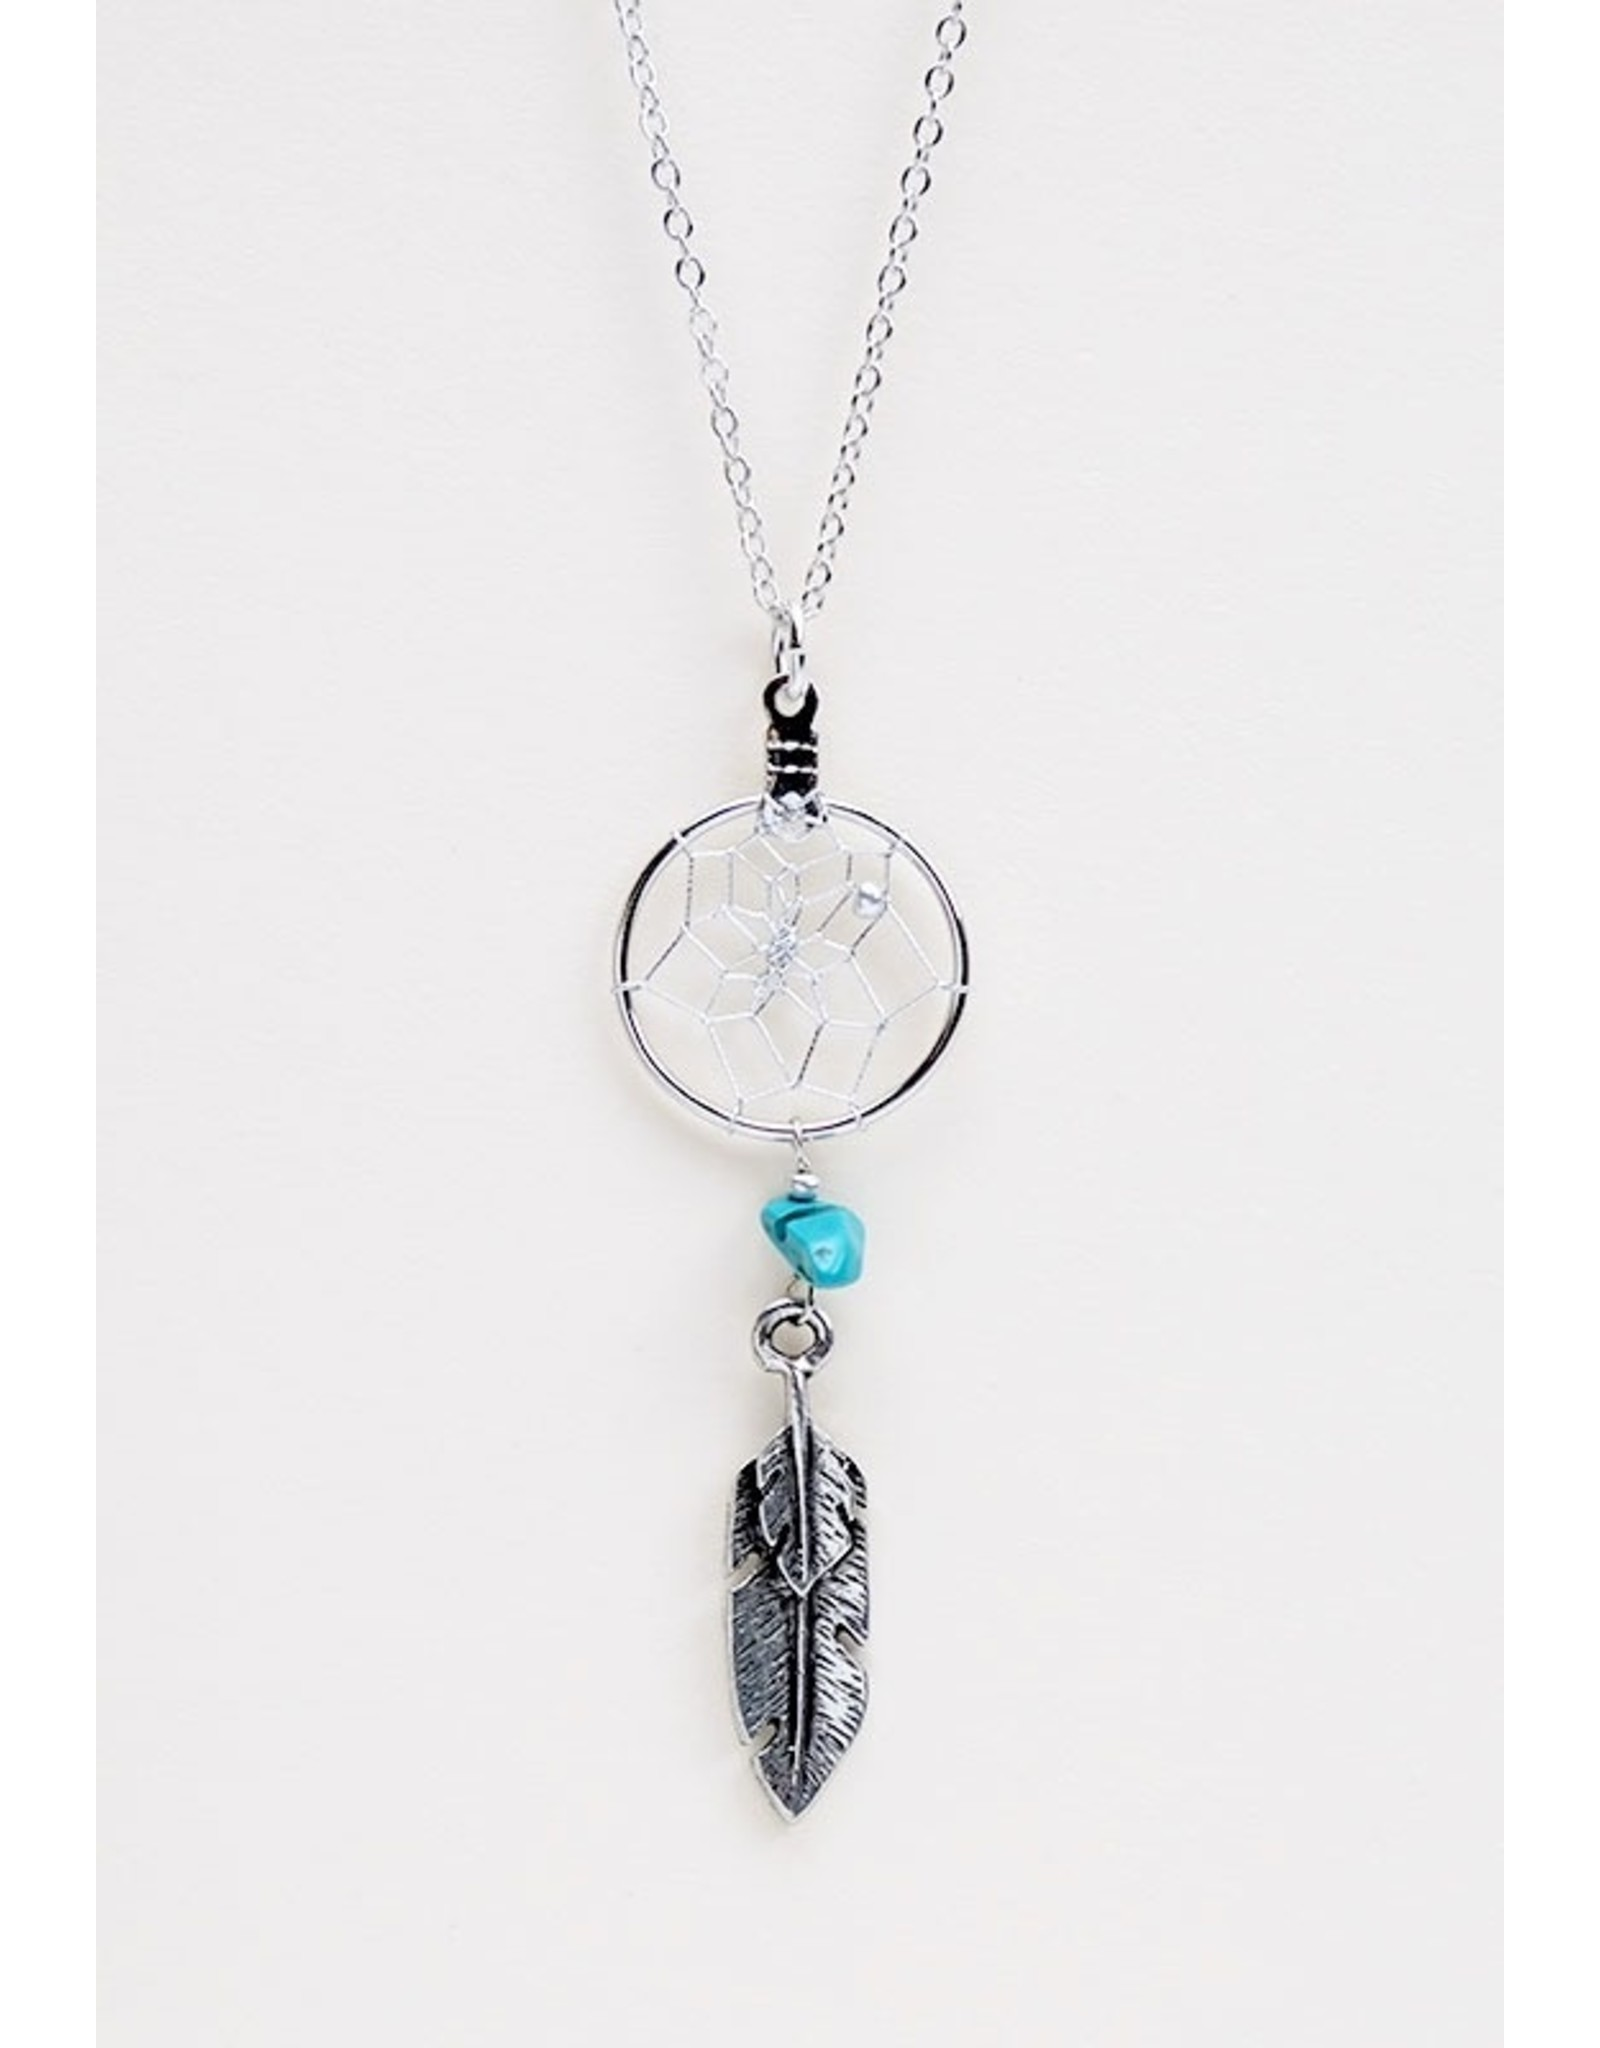 Dreamcatcher Necklace with Turquoise - DC5-P